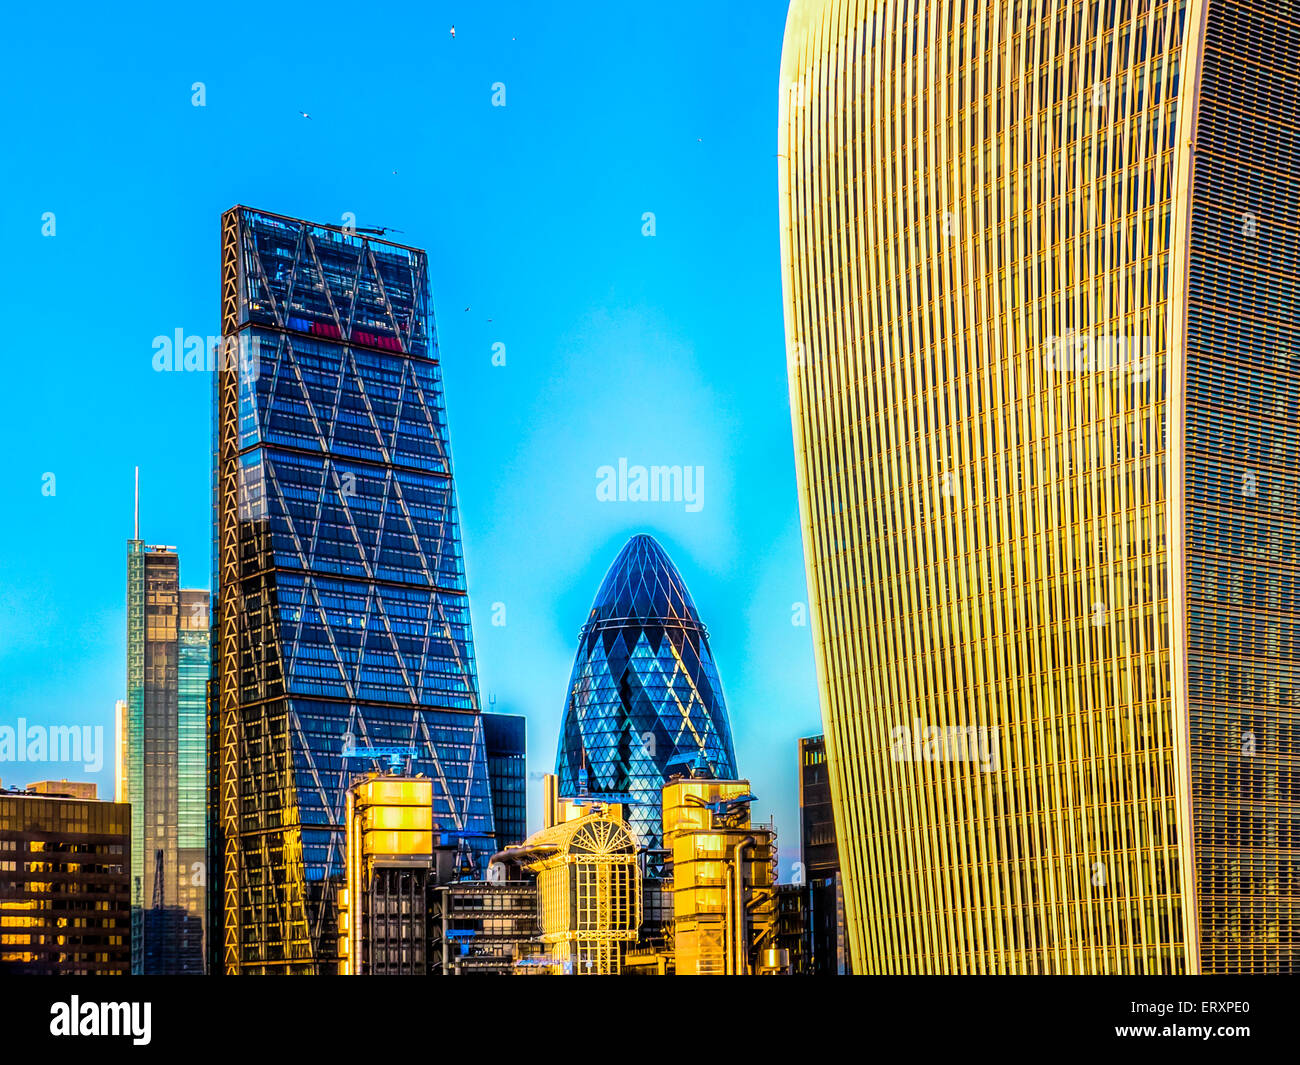 Cheesegrater, Gherkin and Walkie Talkie Buildings London - Stock Image